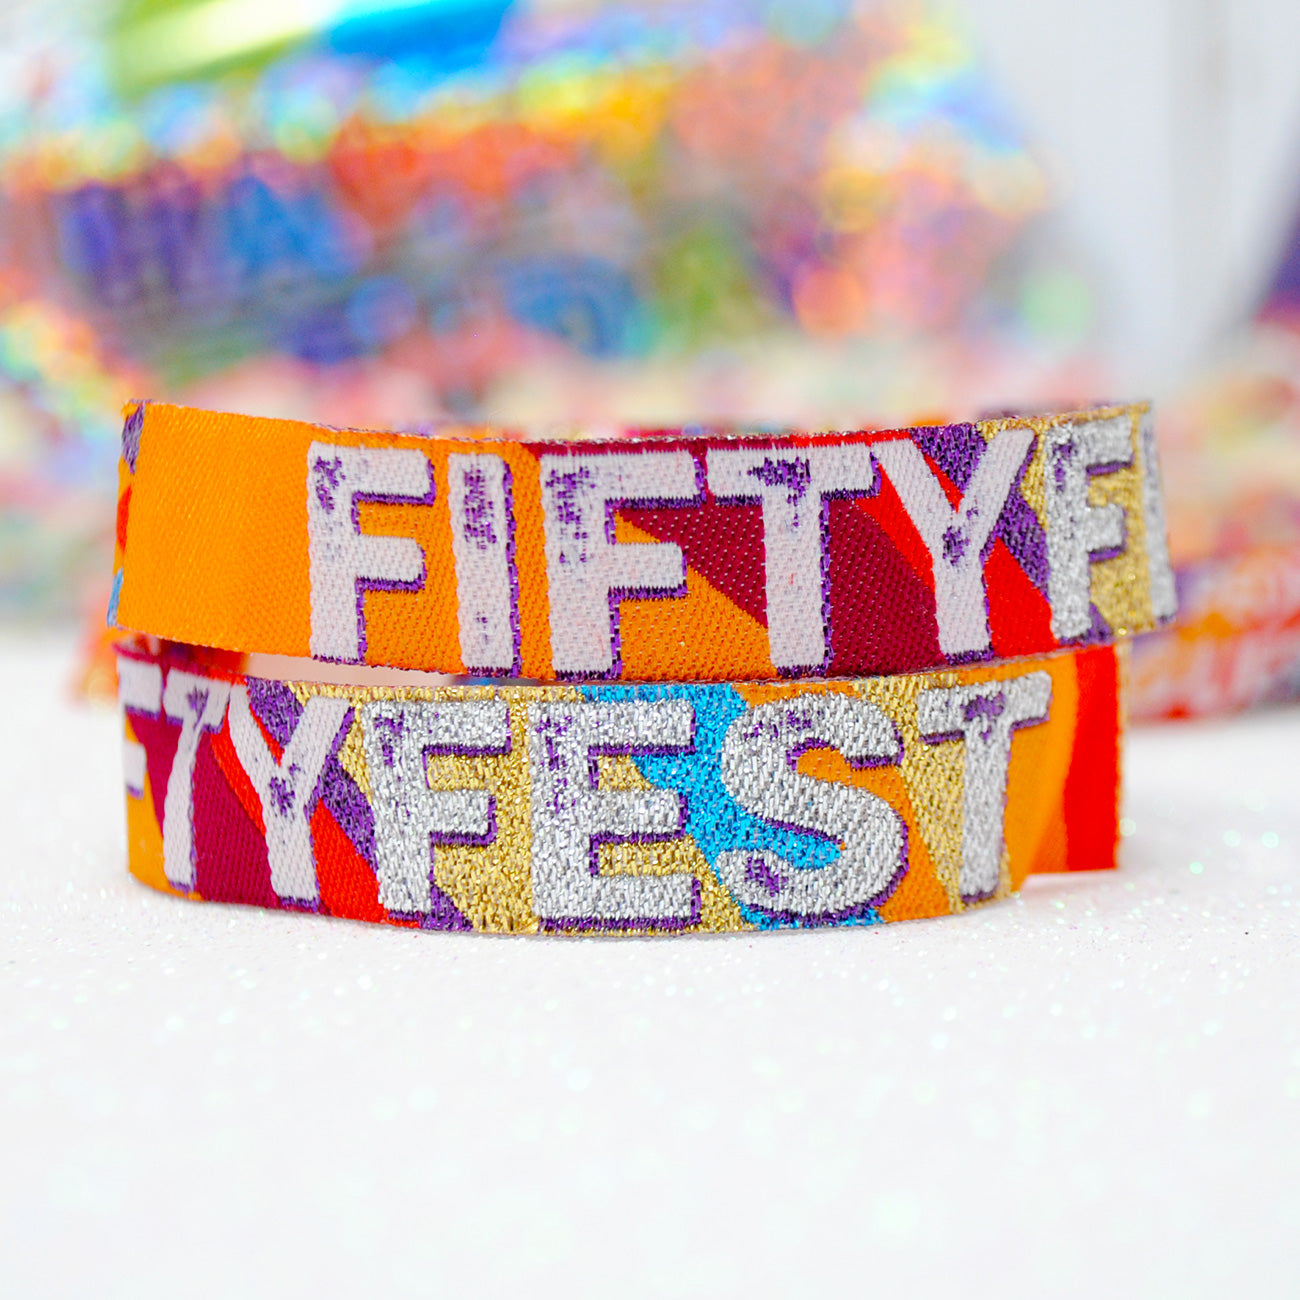 50 birthday festival party wristbands.jpg